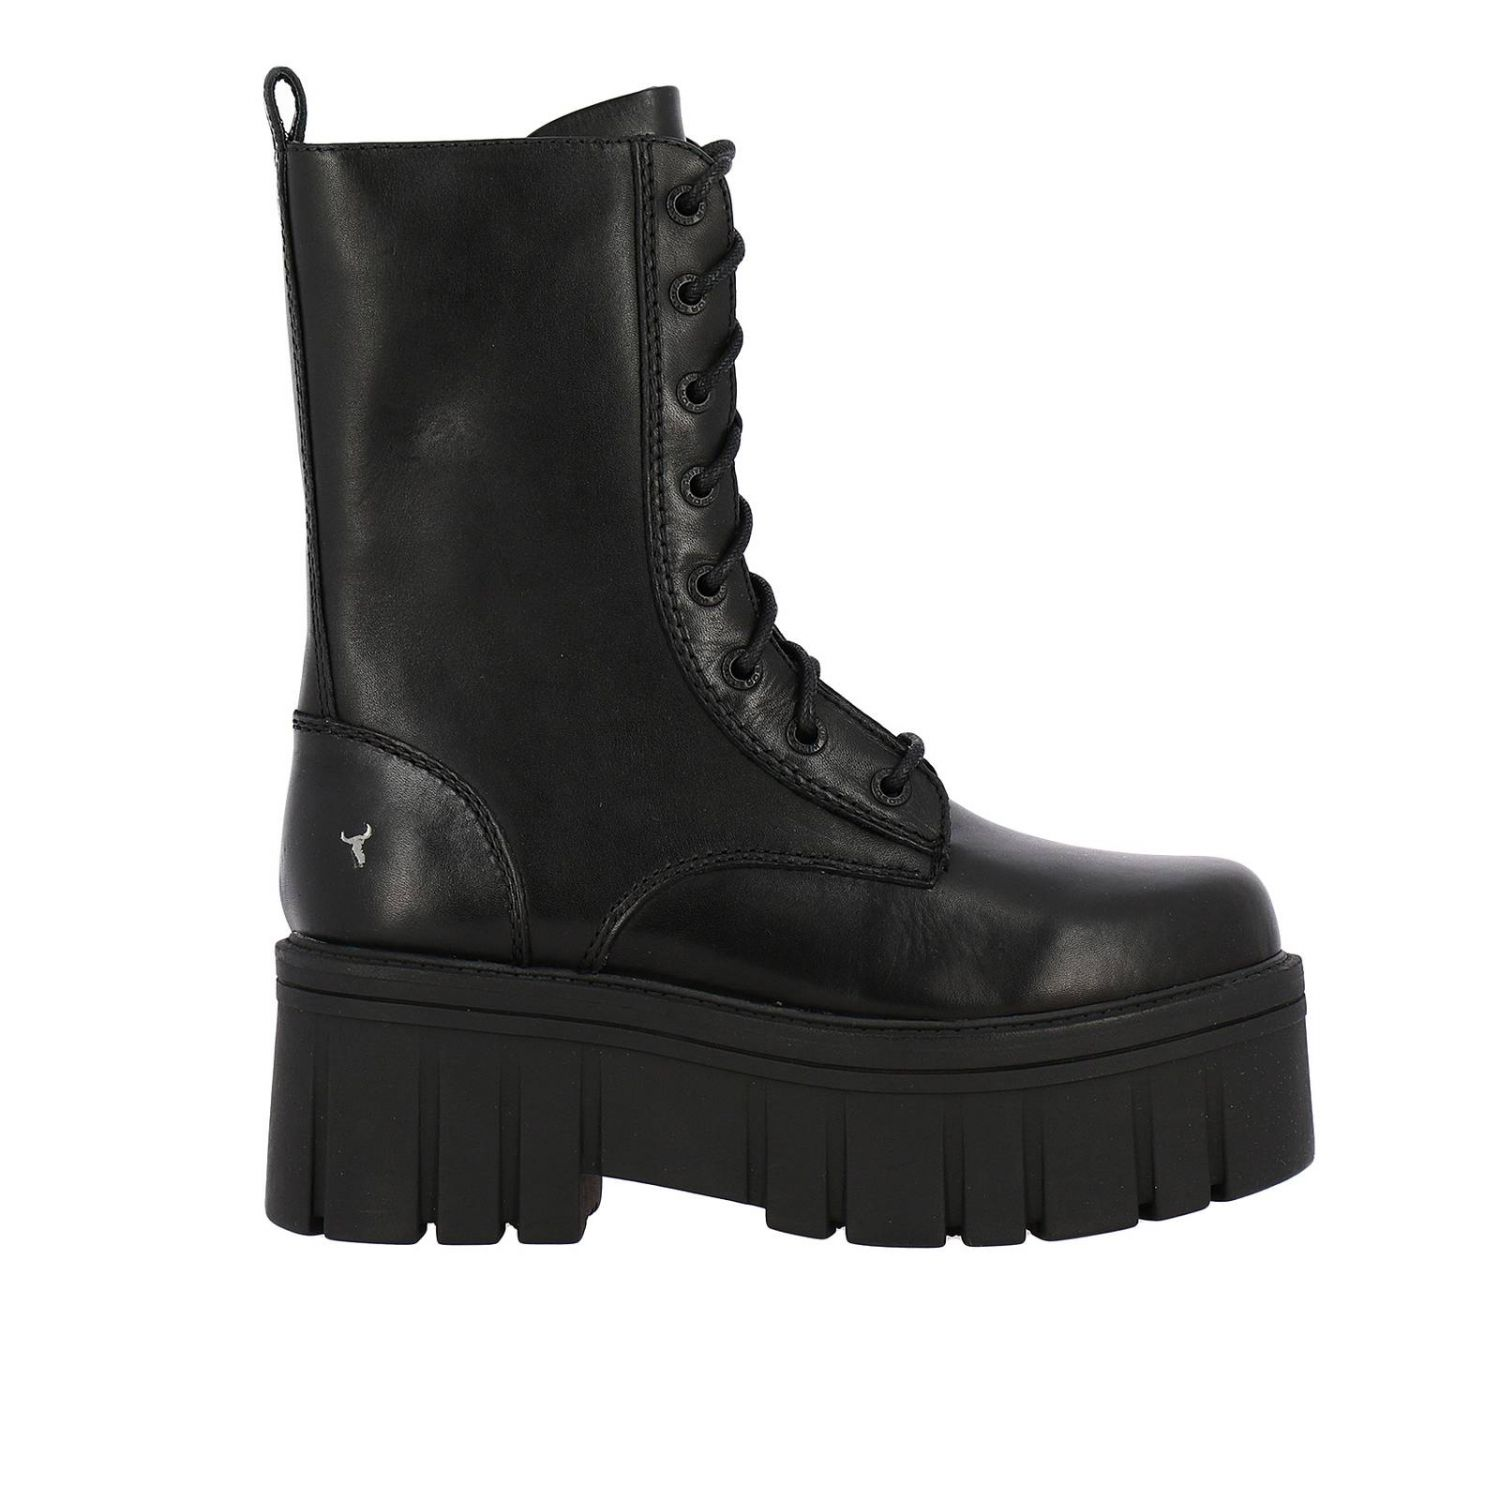 Flat ankle boots women Windsorsmith black 1